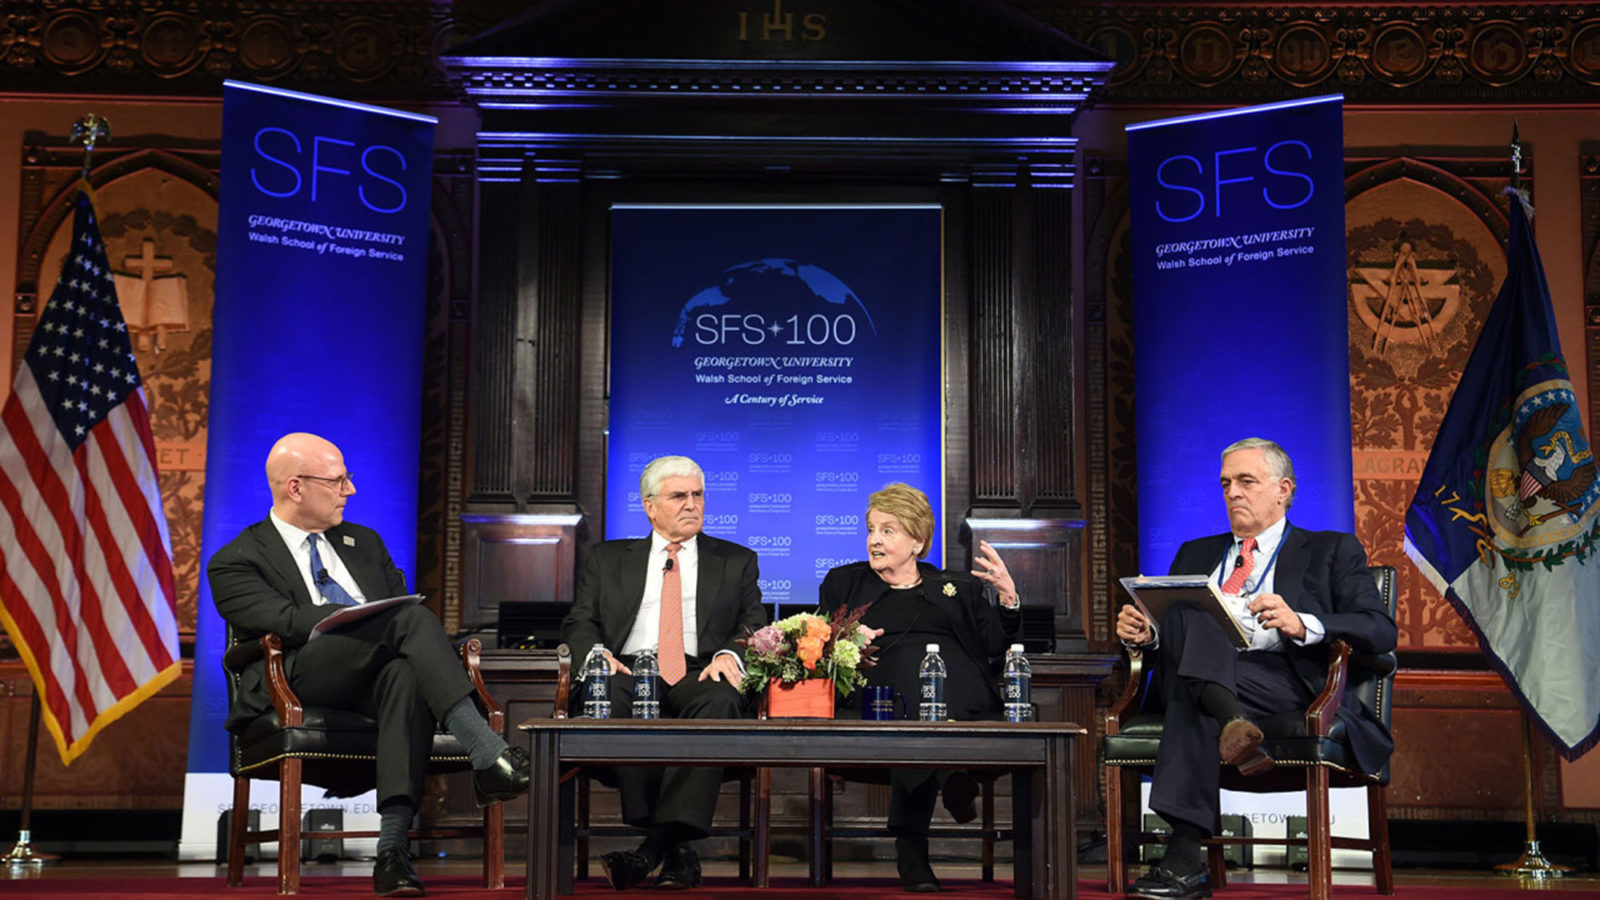 Joel Hellman, George Casey, Madeleine Albright and George Tenet sit on stage in Gaston Hall with blue SFS 100 banners in the background.